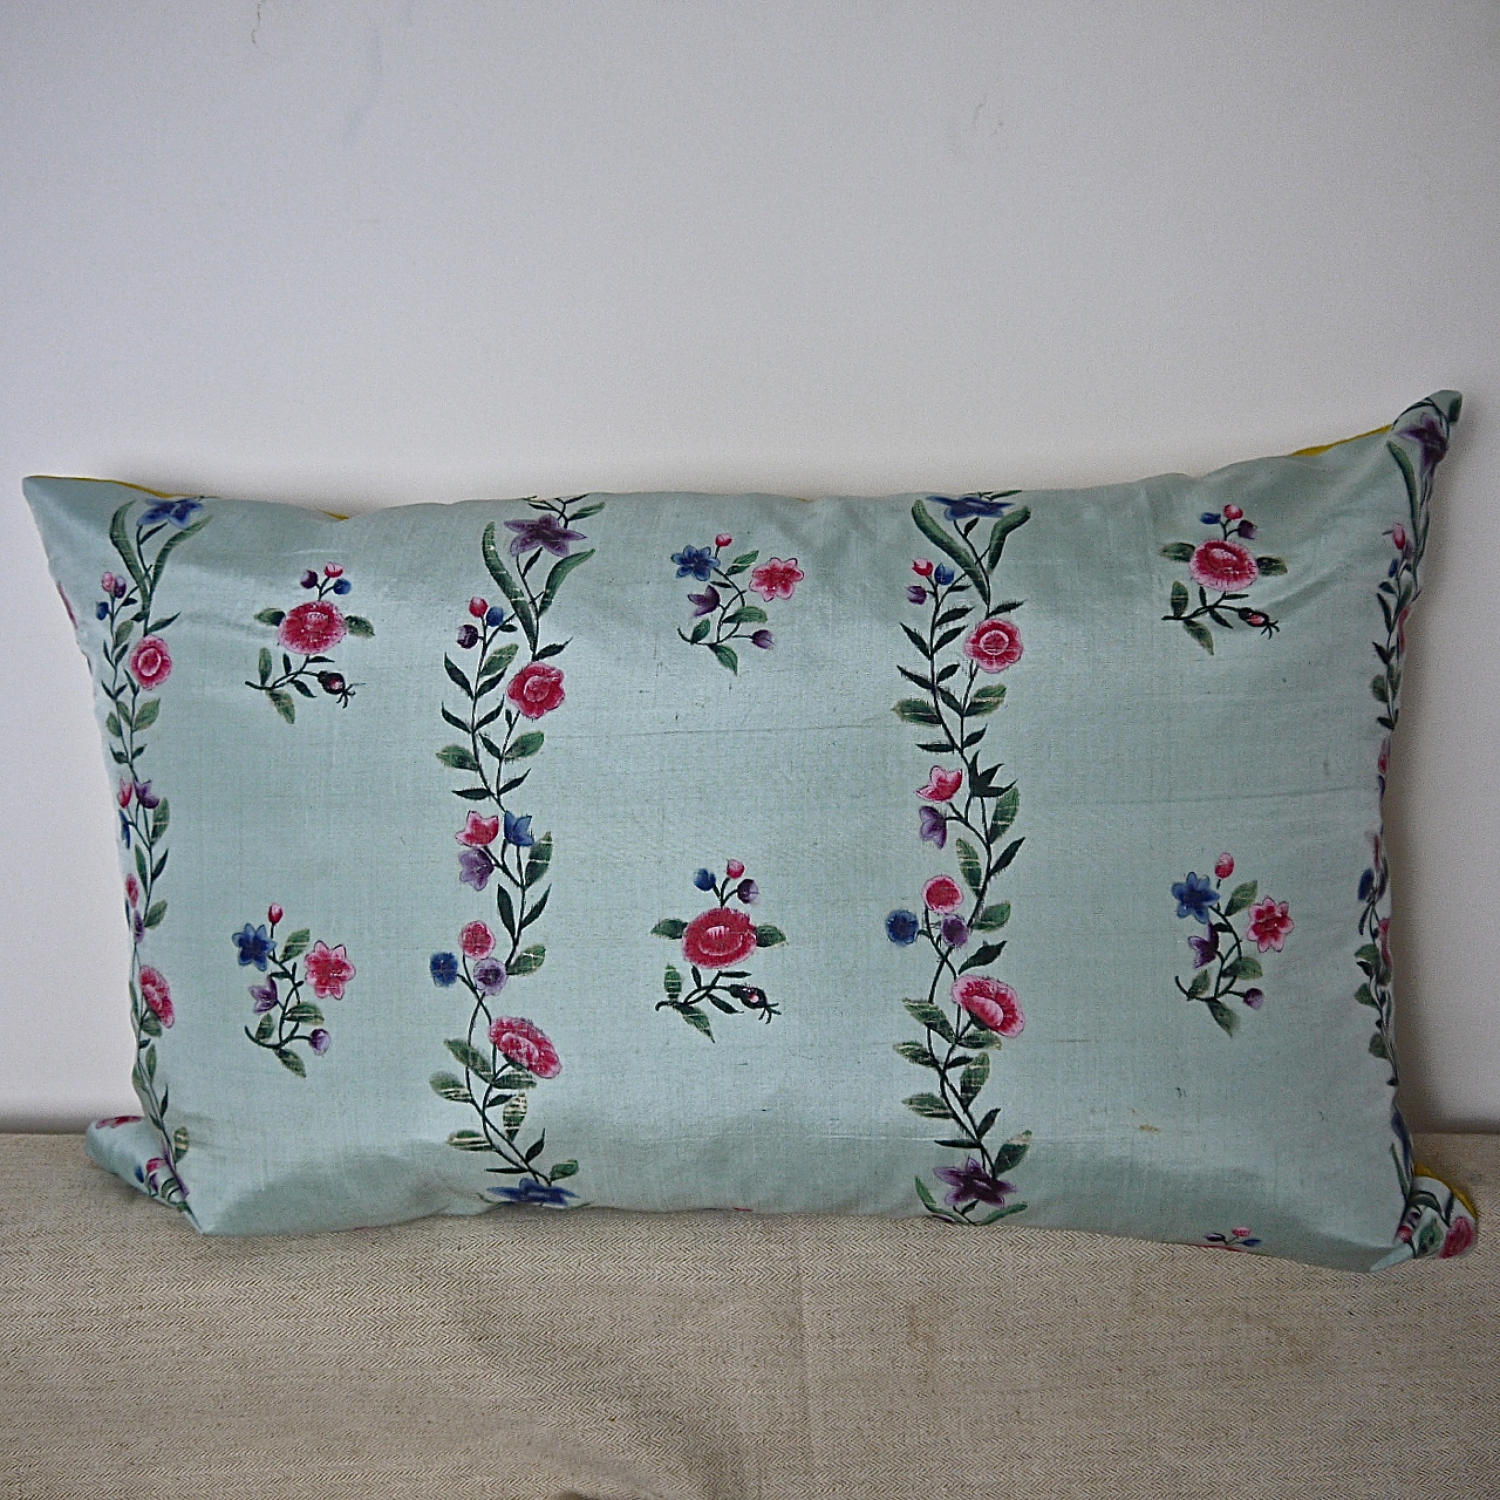 18th century Chinese hand-painted flowers silk cushion